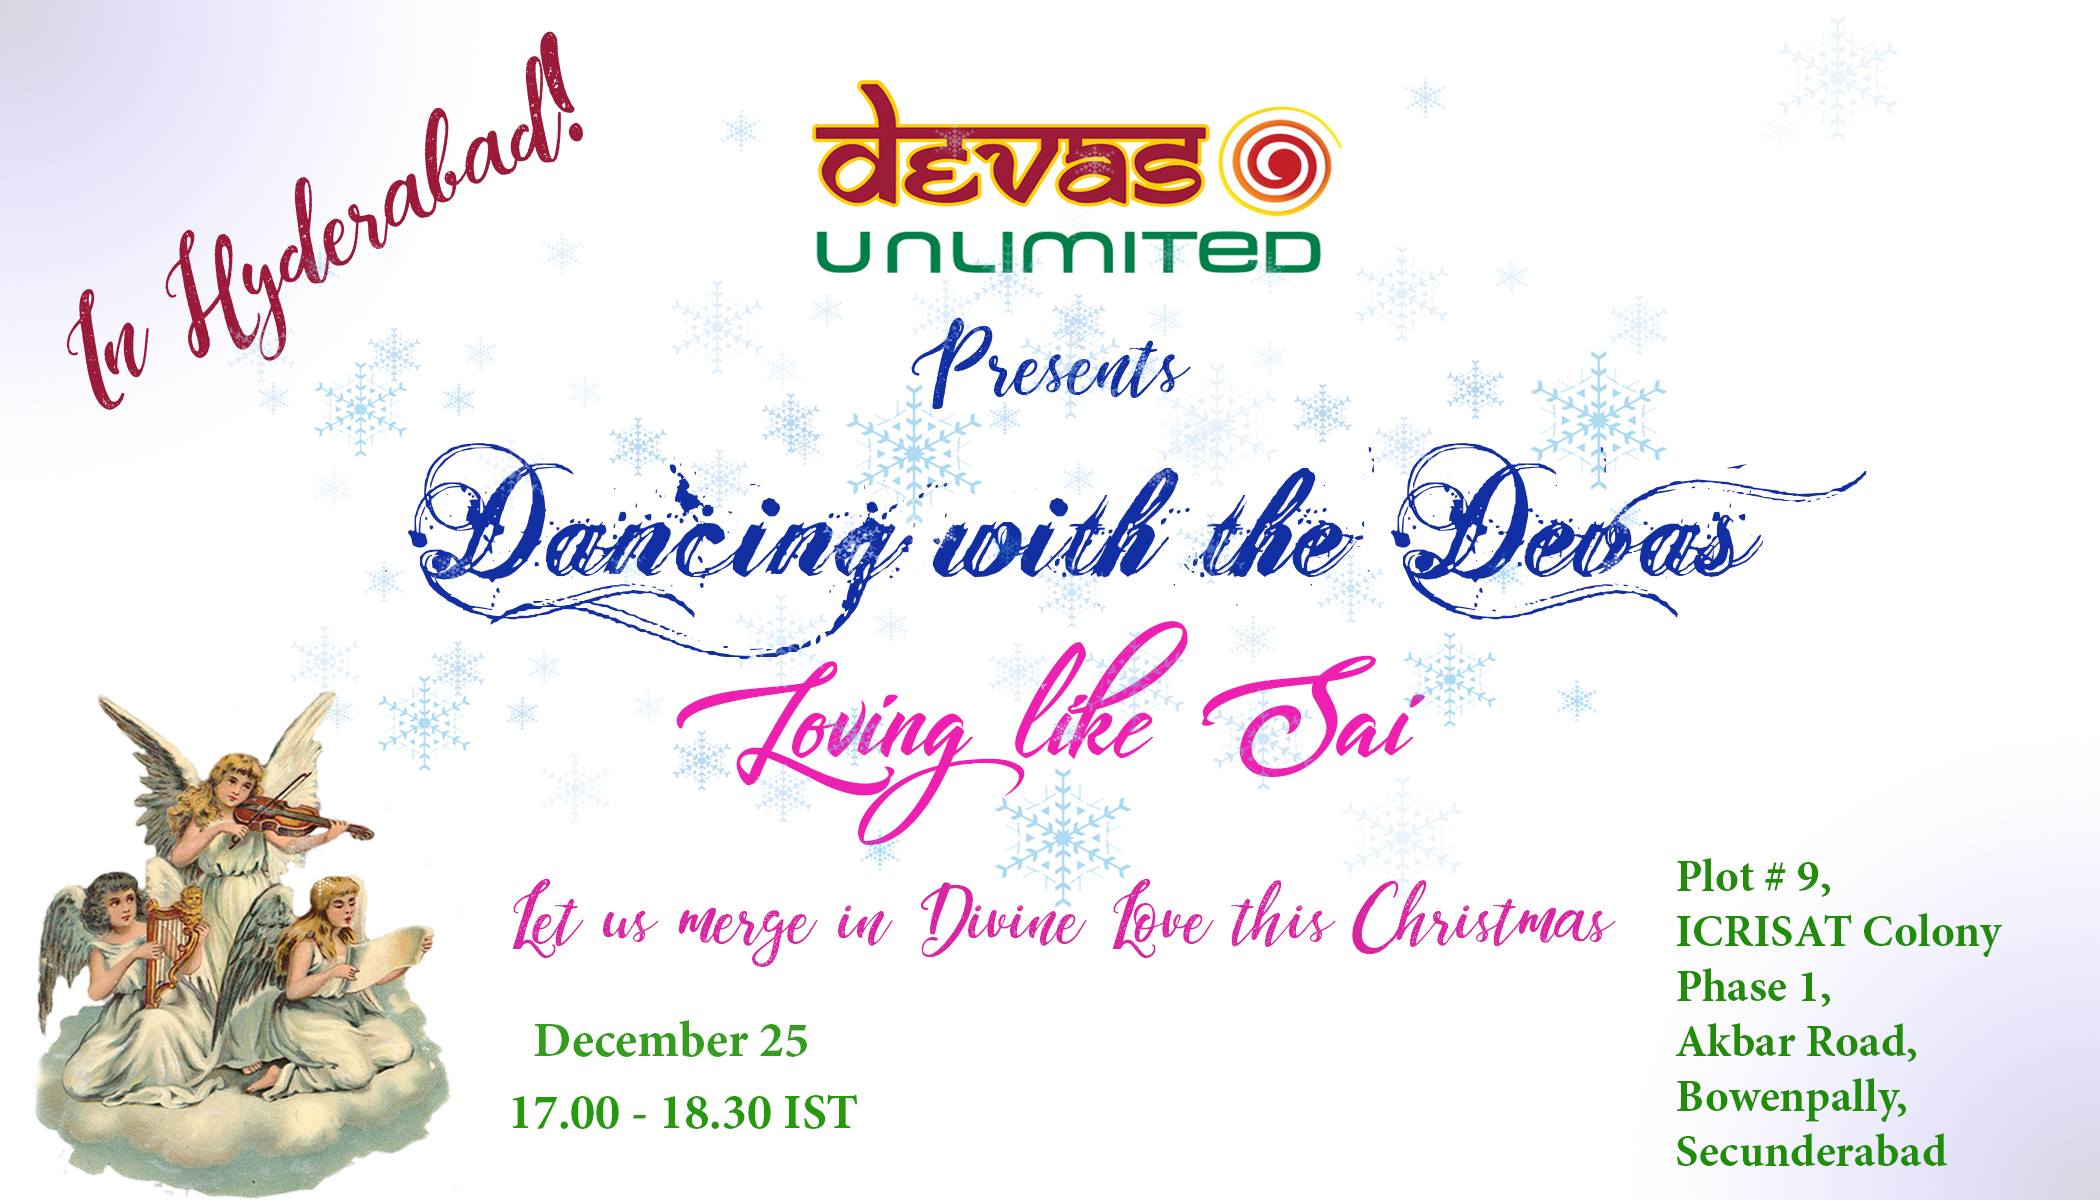 DWD poster for christmas_eventshigh